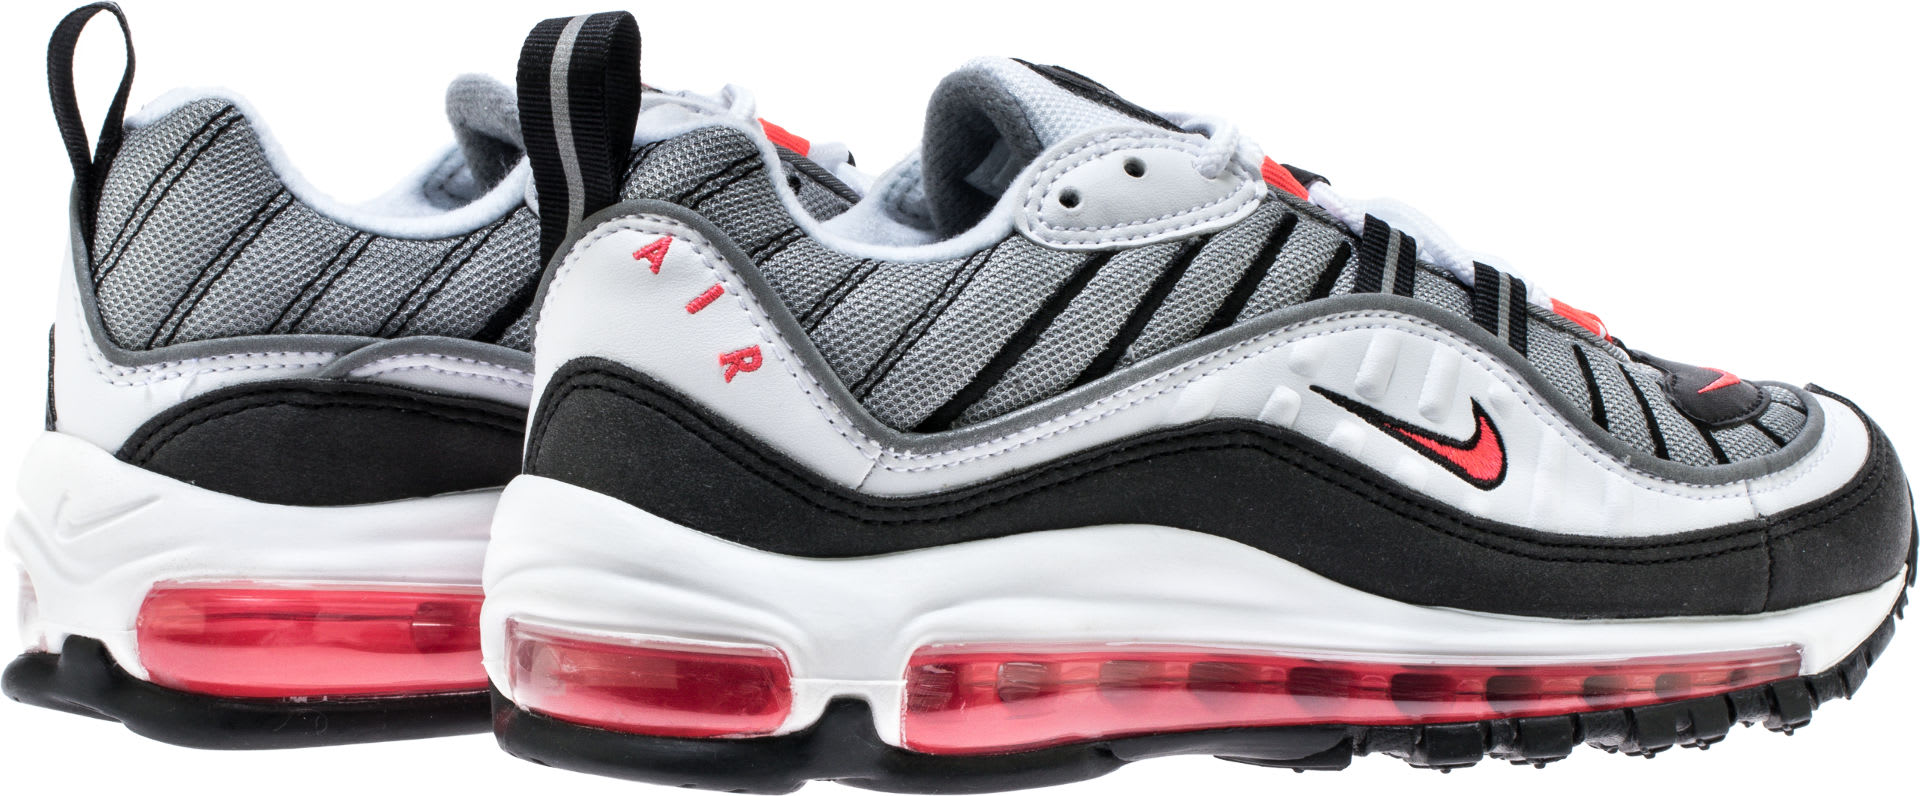 Nike WMNS Air Max 98 Solar Red Release Date AH6799-104 Back